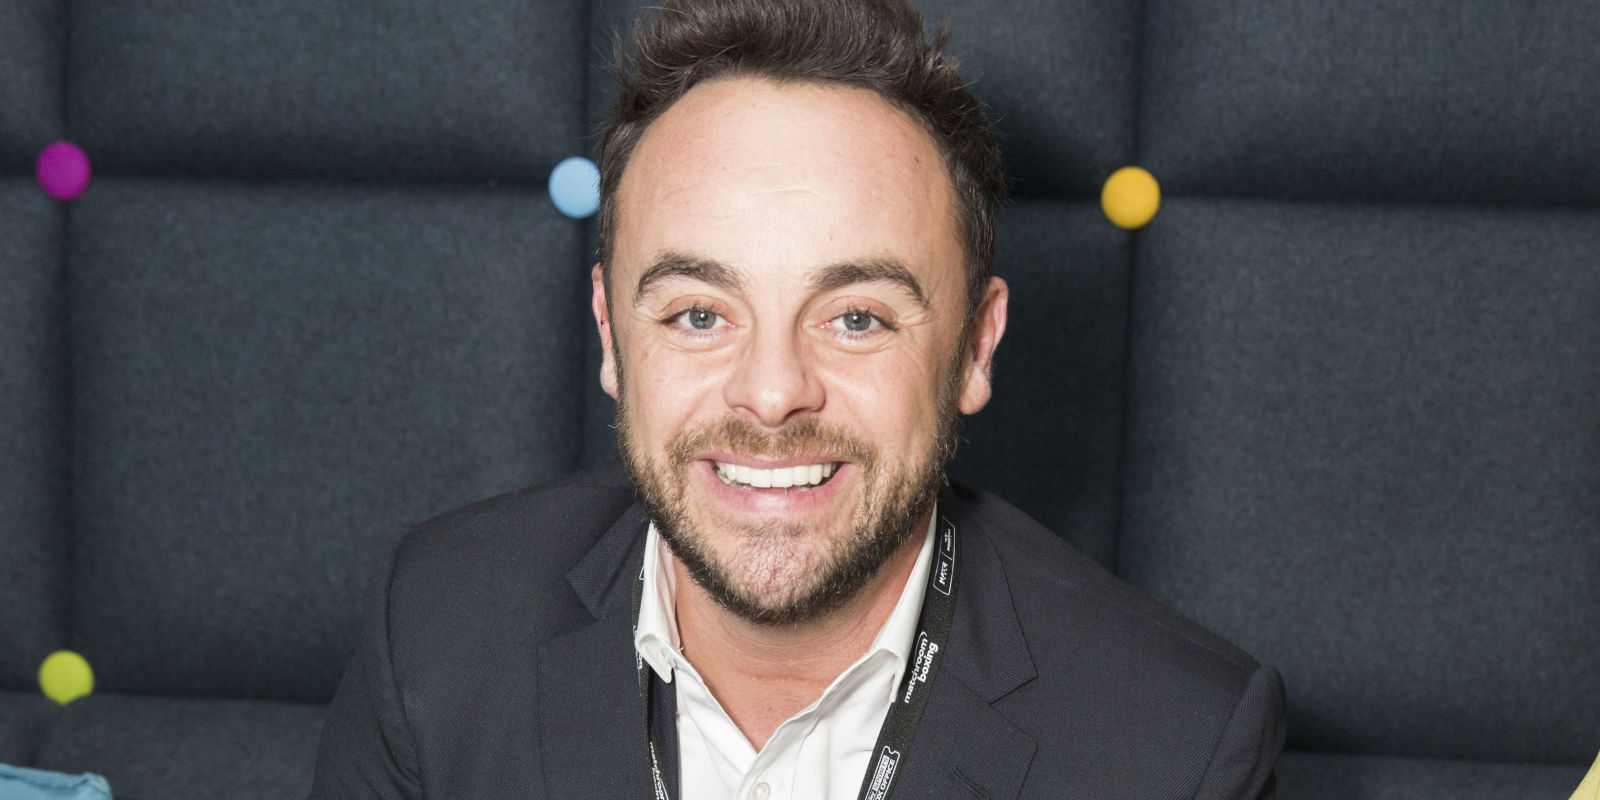 Ant McPartlin checks into rehab for drugs and alcohol